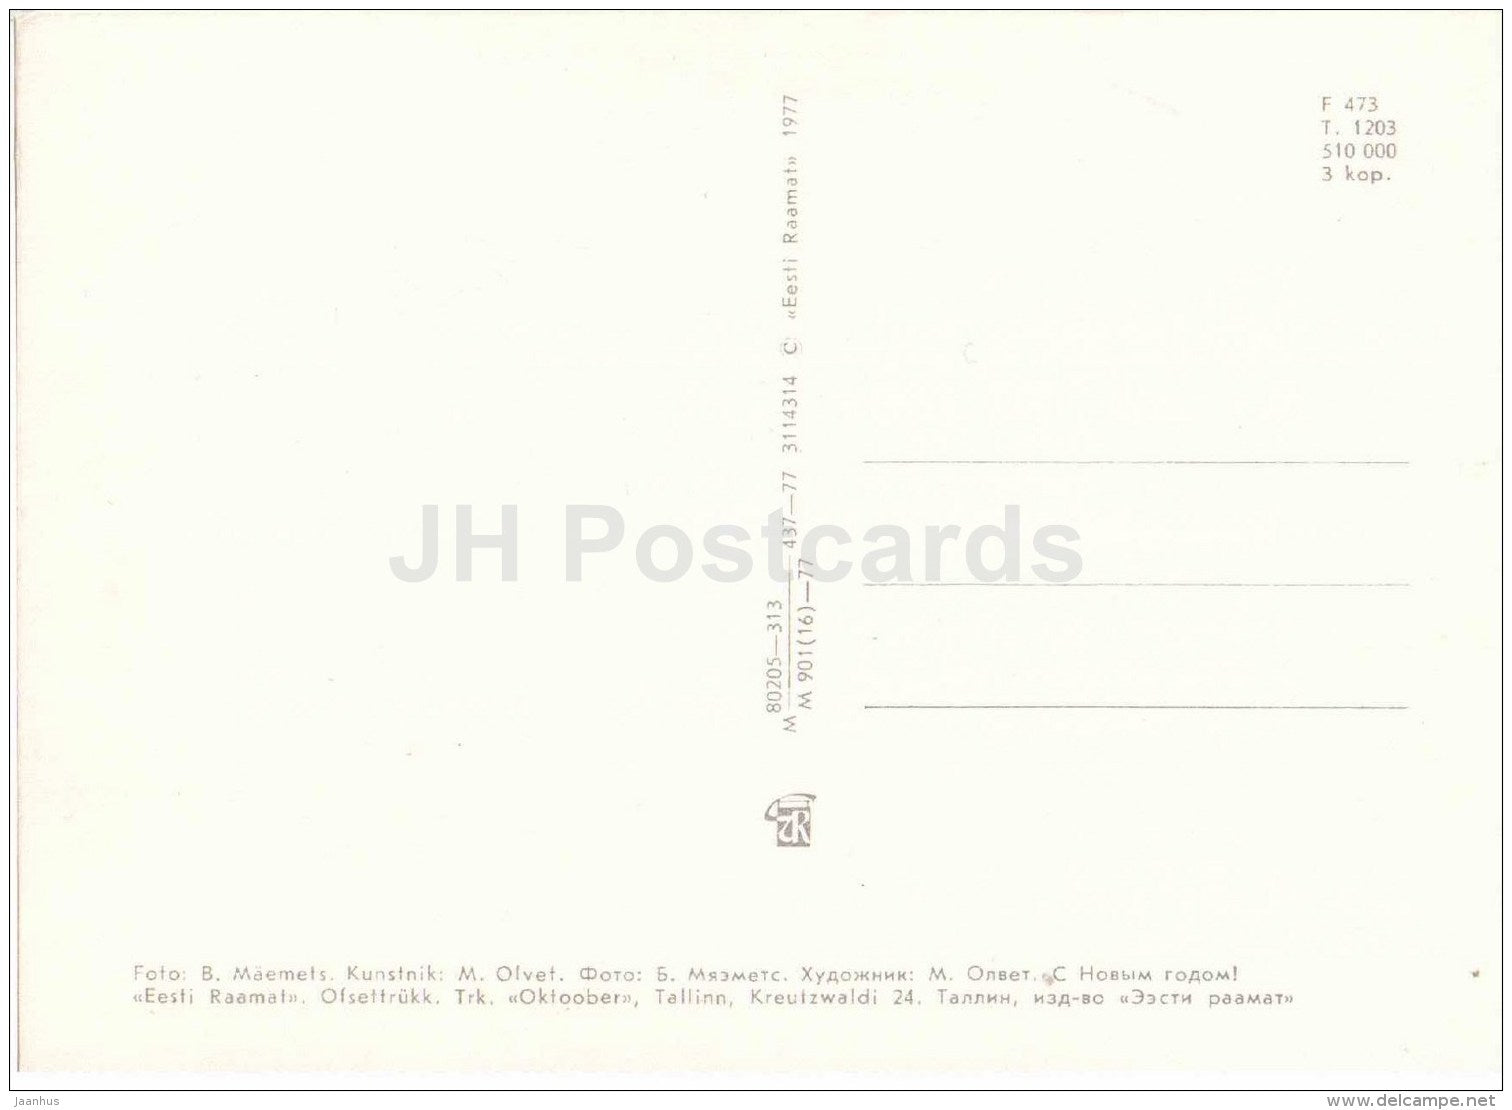 New Year Greeting Card - decorations - 1977 - Estonia USSR - used - JH Postcards